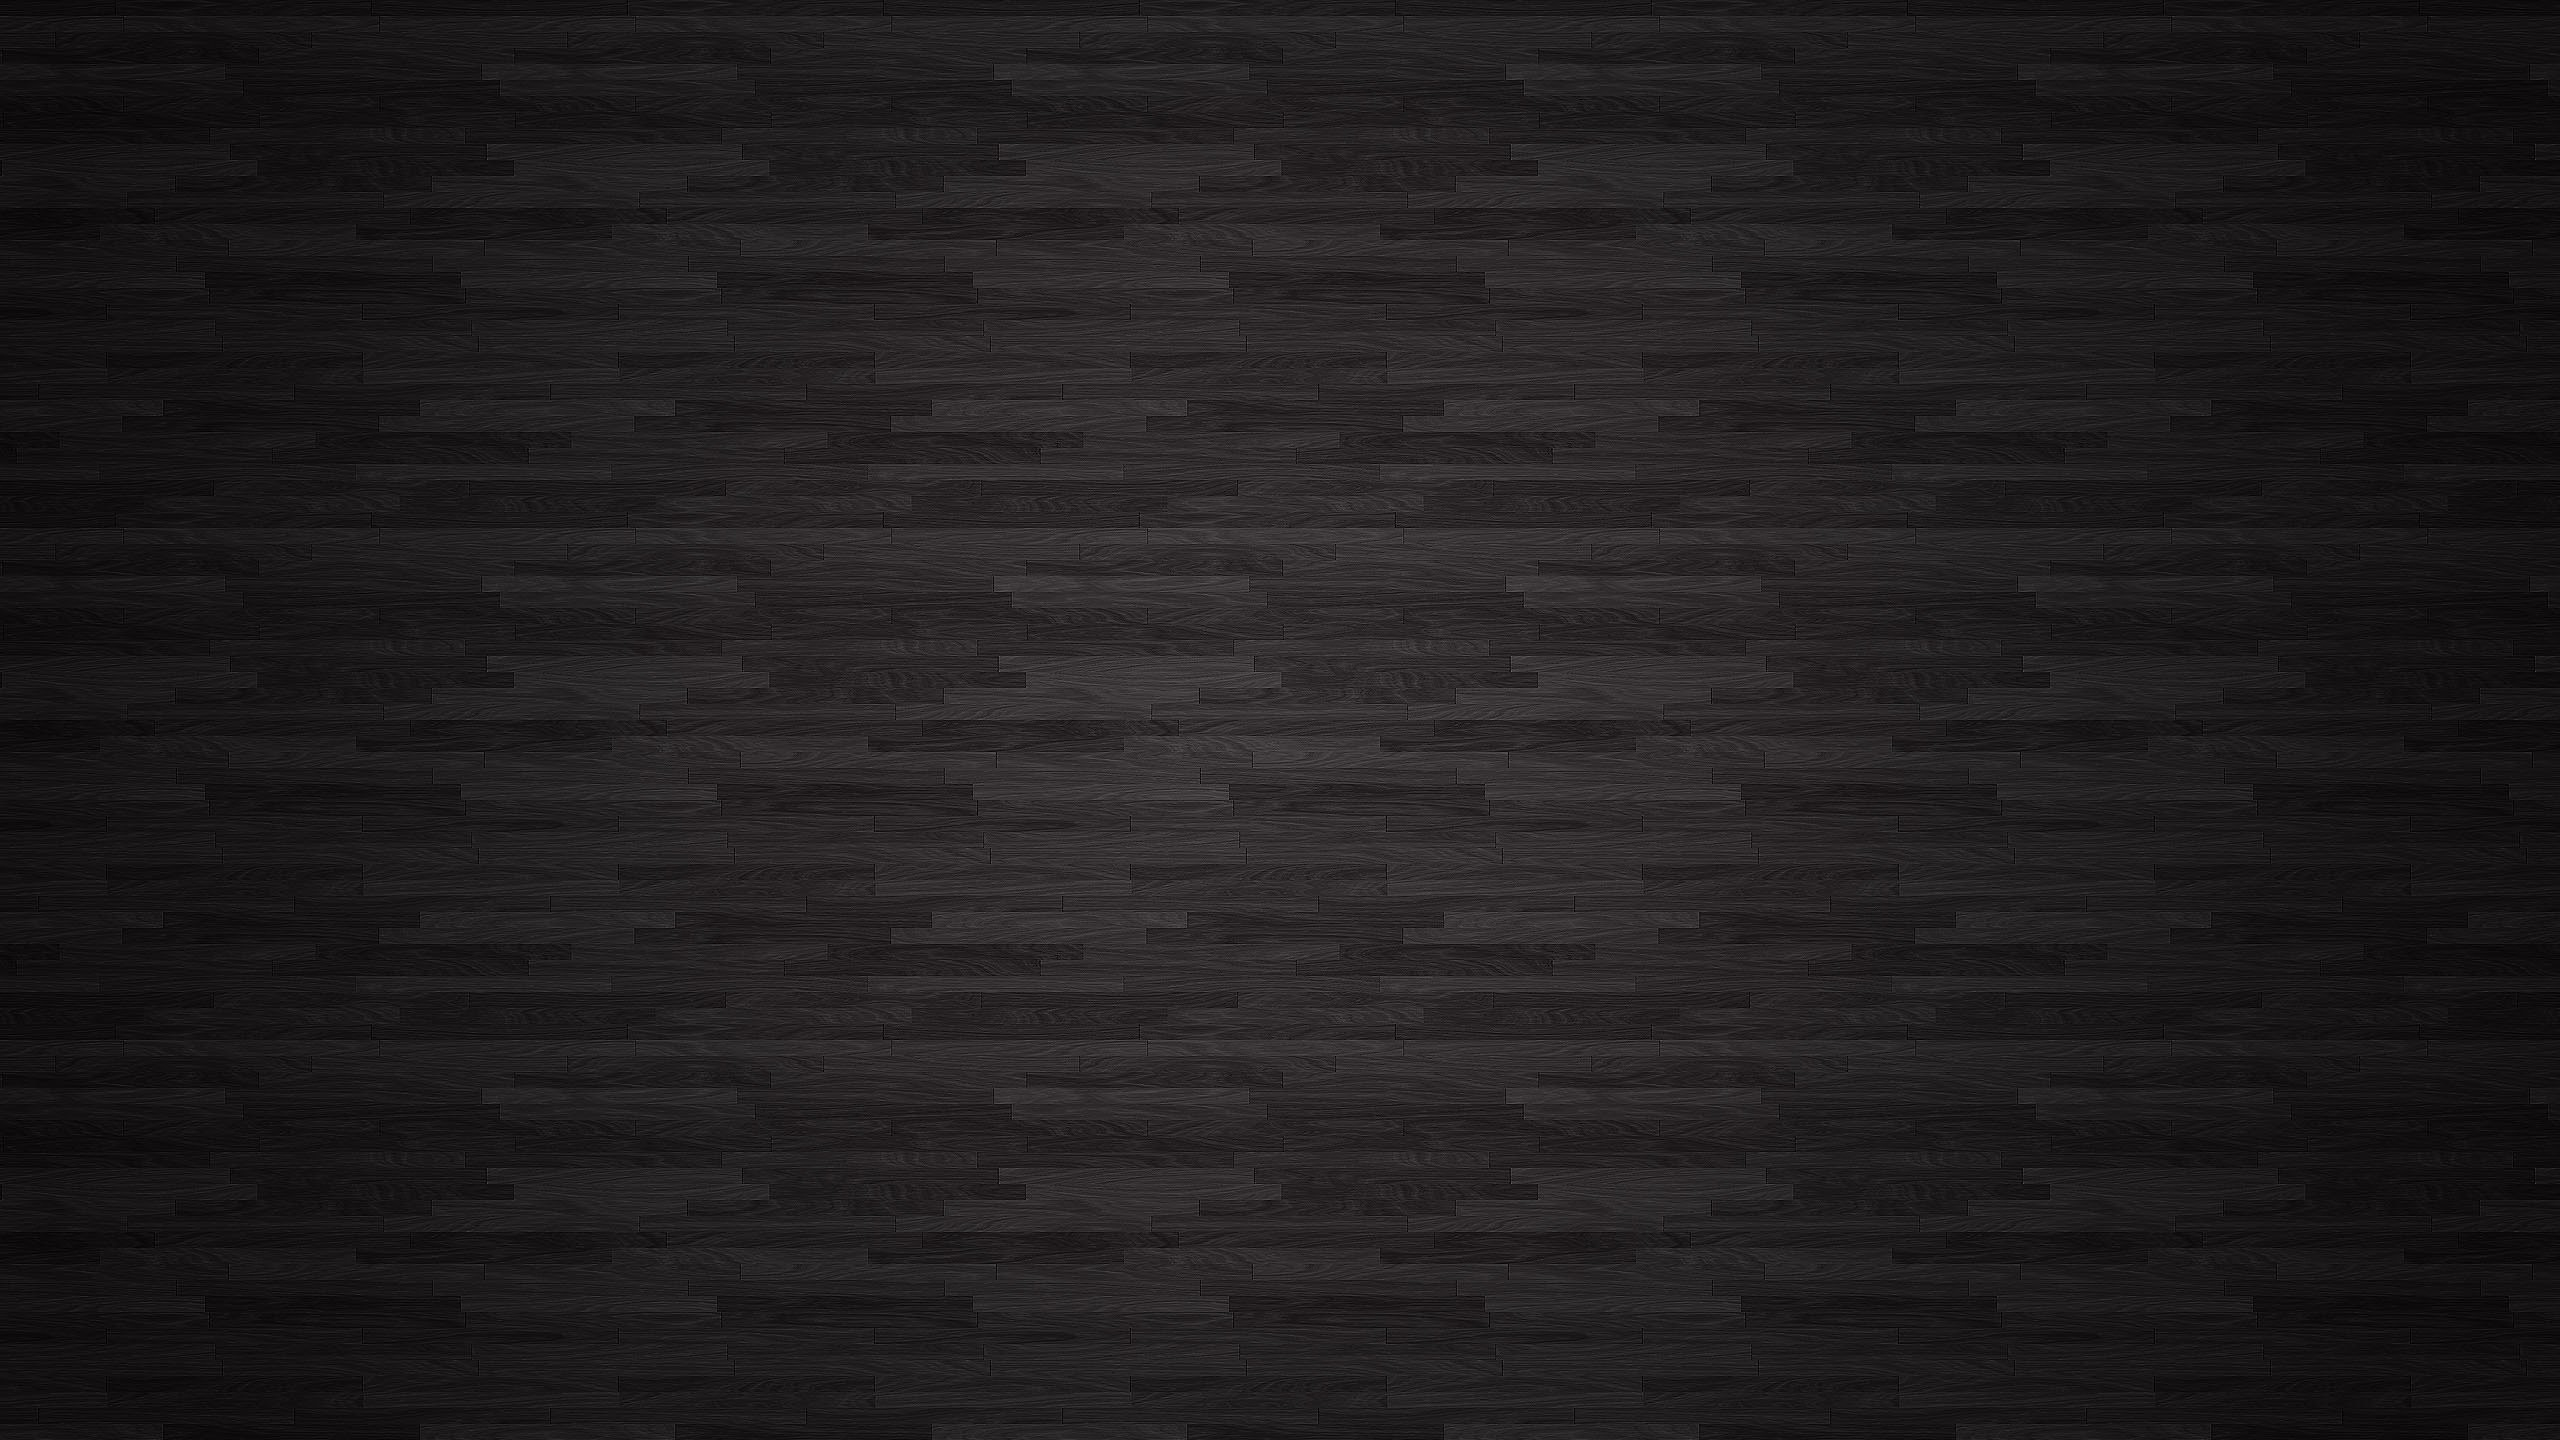 The post Download 30 Texture Wallpapers appeared first on AndroidGuys.